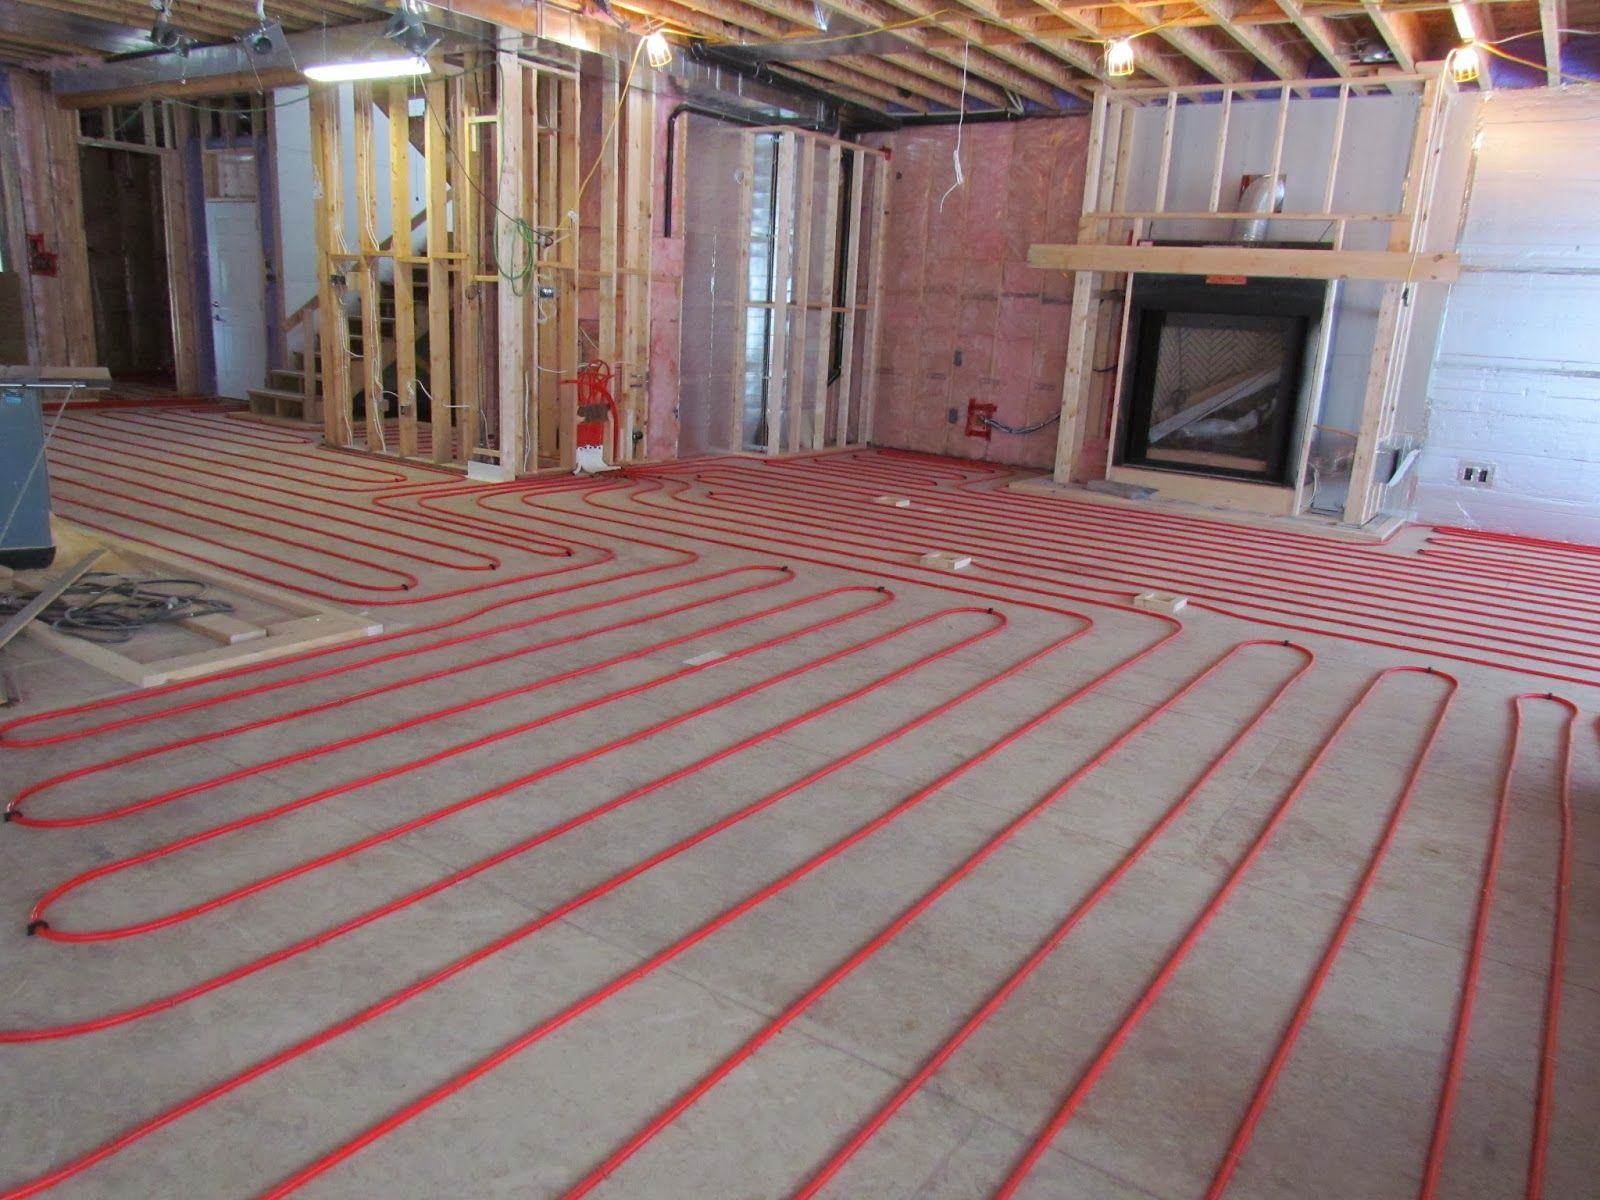 Radiant In Floor Heat Is A Wonderful Way To Turn A Cold Basement Into A Warm And Cozy Liveable Sp Floor Heating Systems Radiant Floor Basement Flooring Options